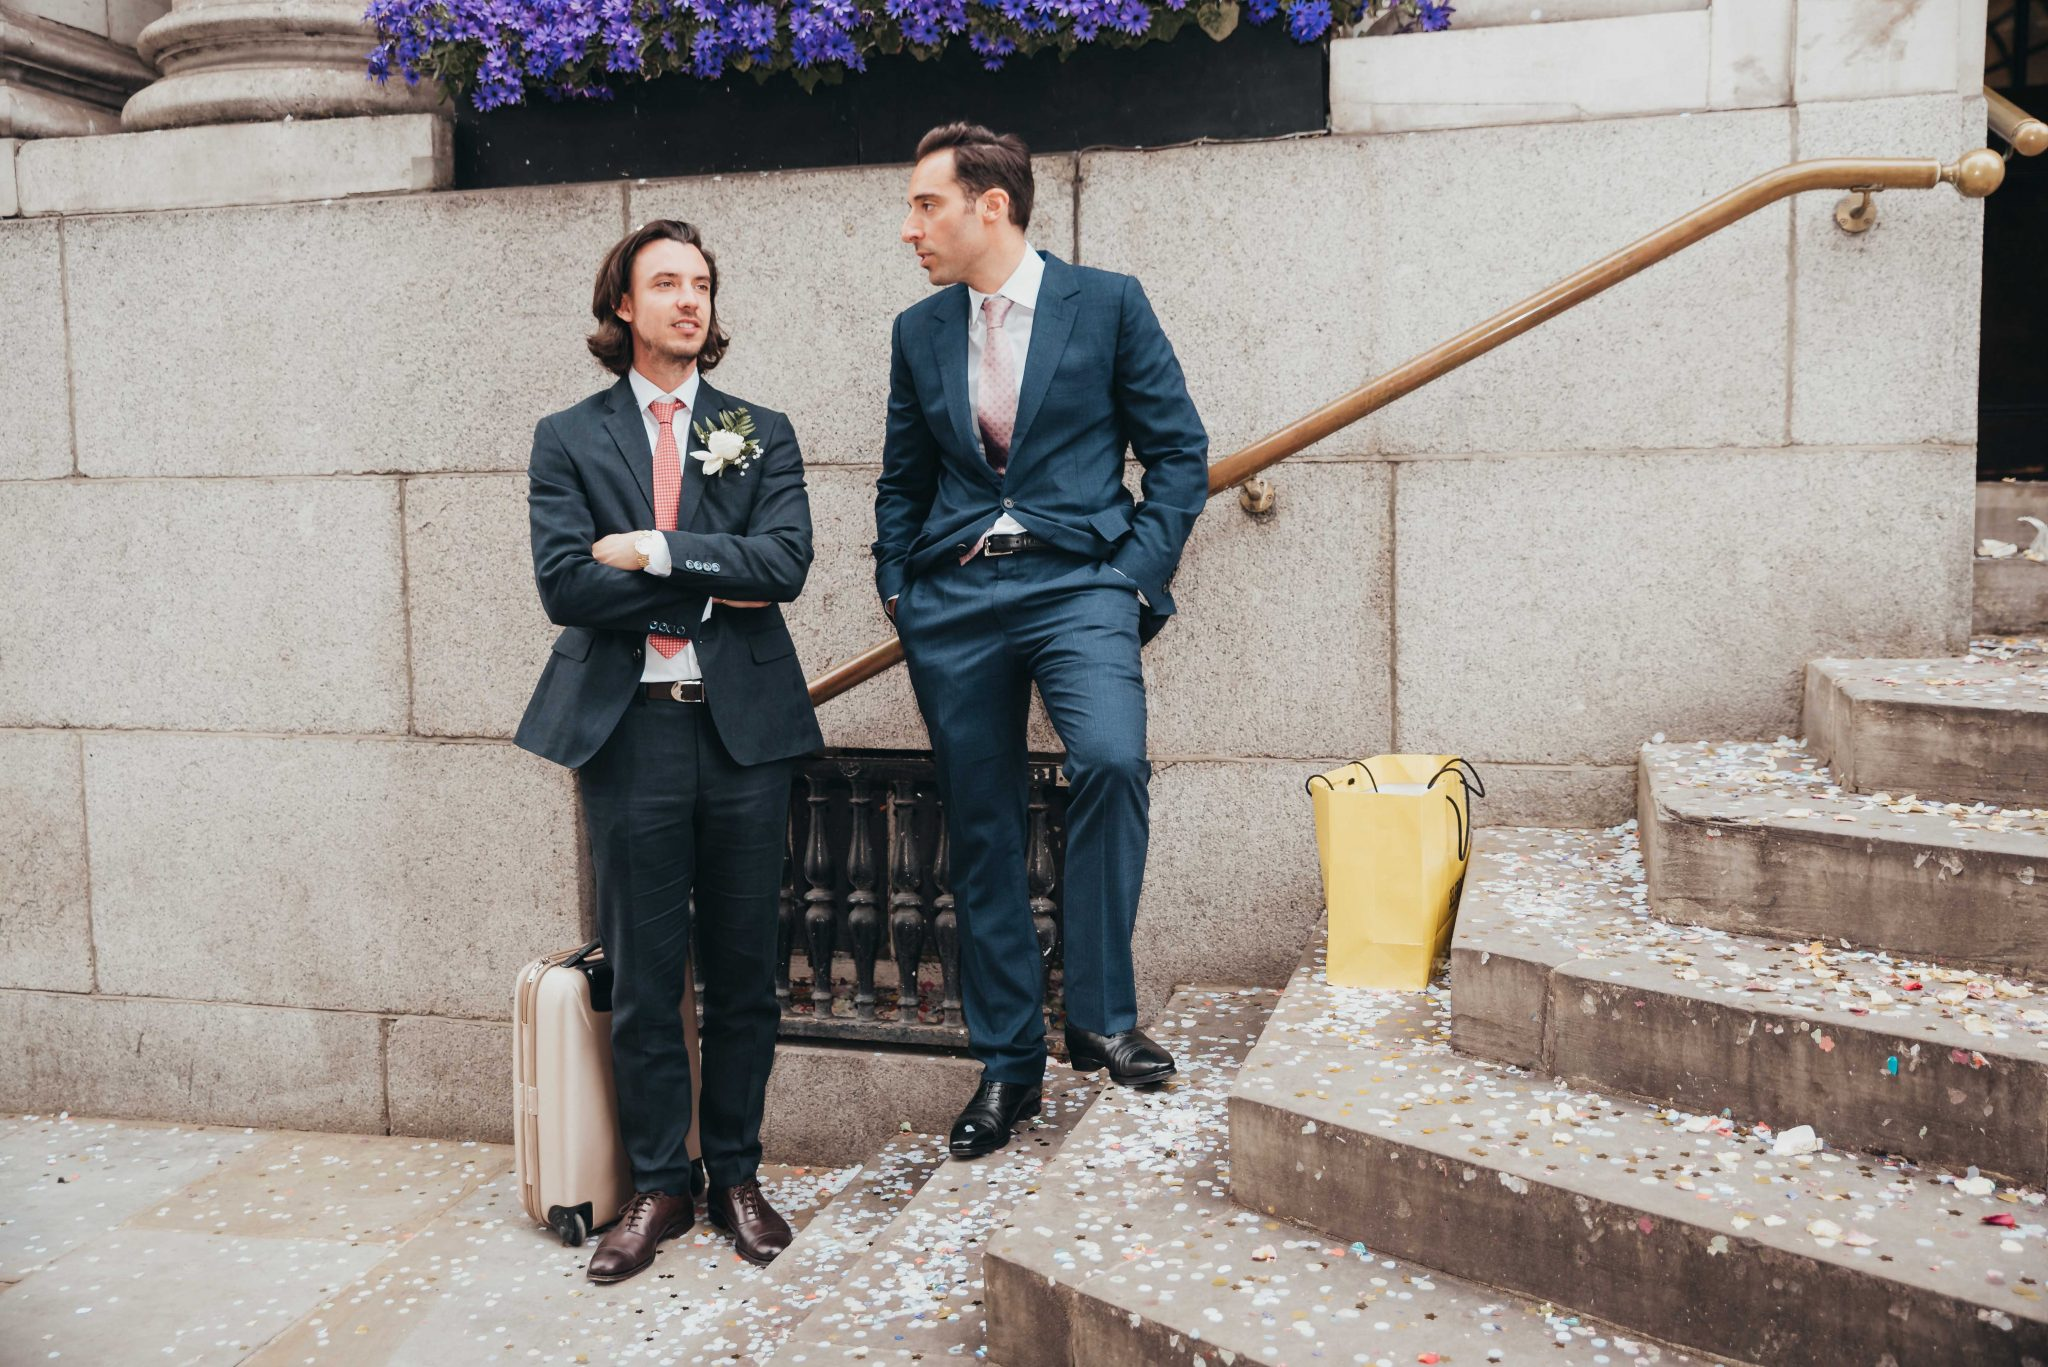 Married couple at the registry office